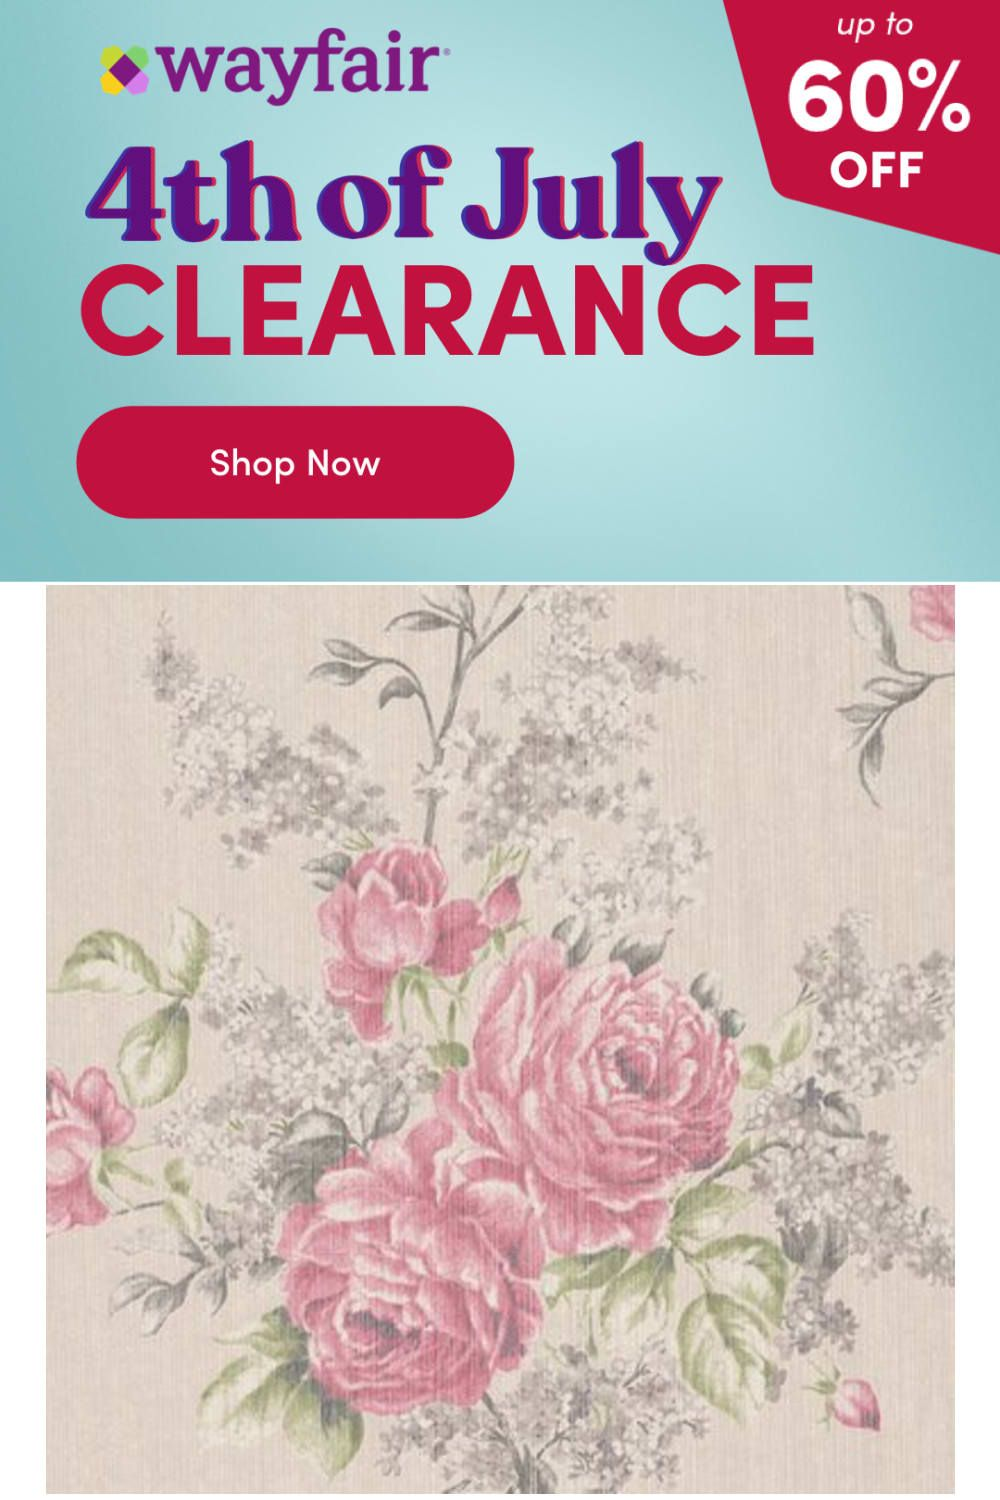 Photo of Walls Republic 33′ x 20.8″ Floral Botanical Classic WallpaperFabric in Gray   Wayfair   Home Decor